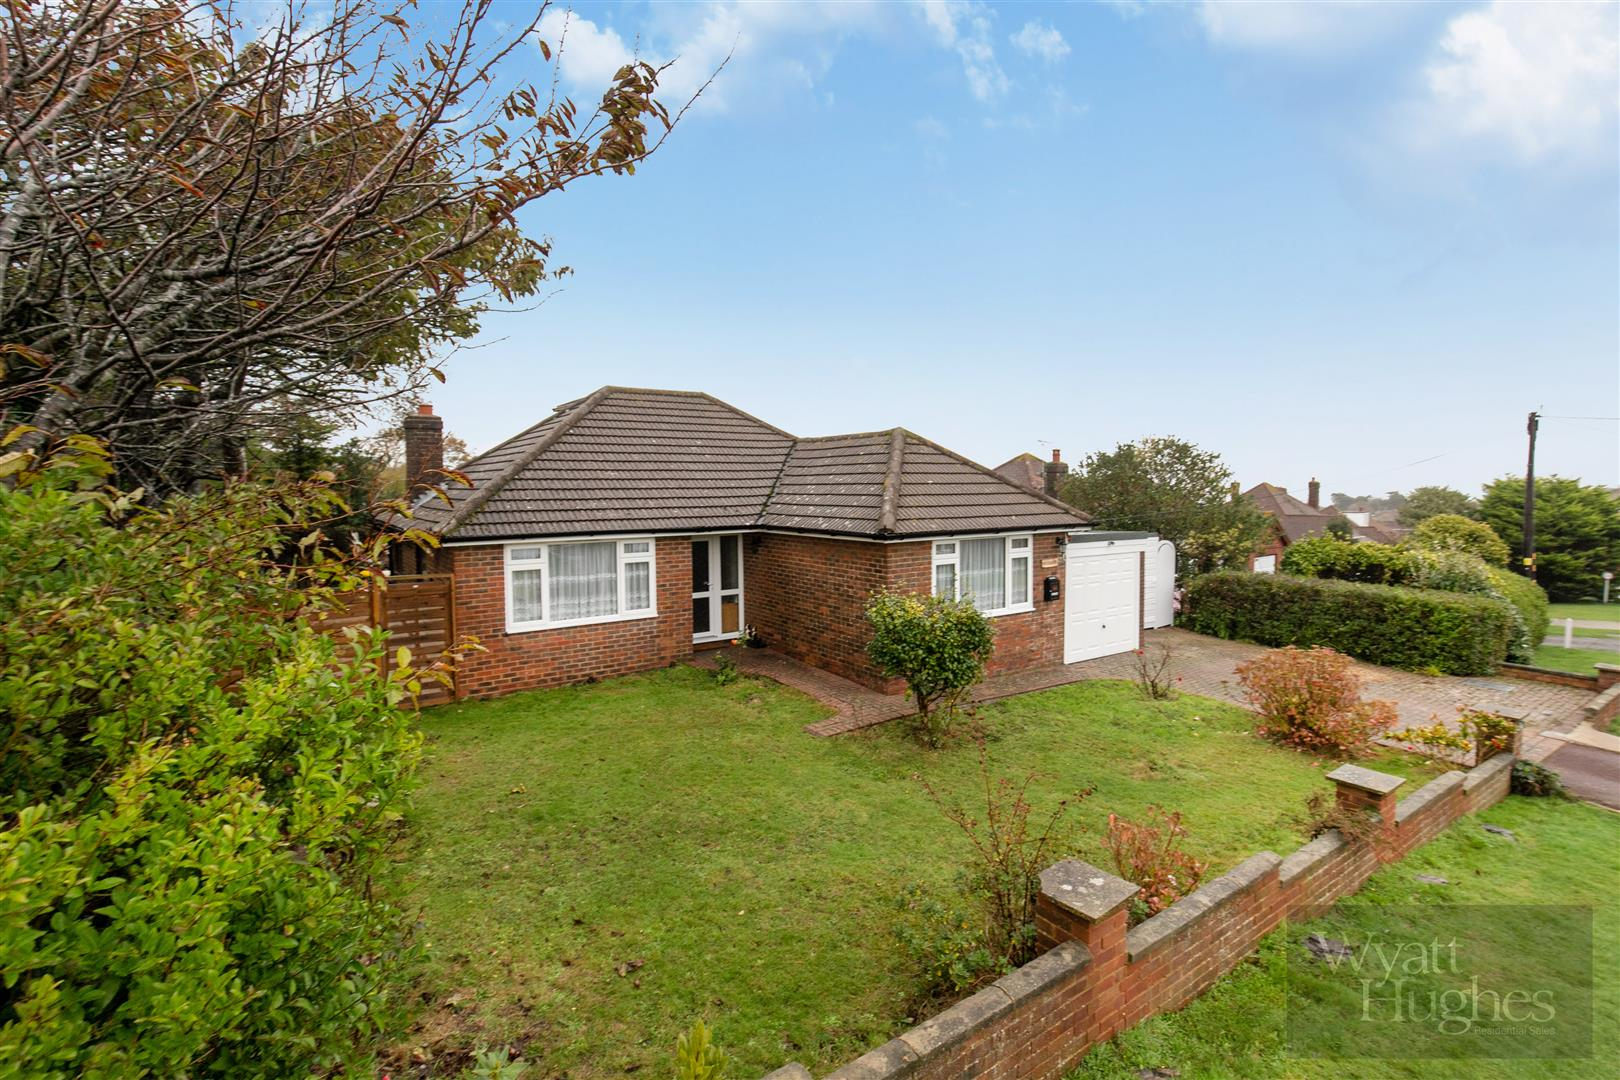 2 bed detached bungalow for sale in Fyrsway, Hastings, TN35